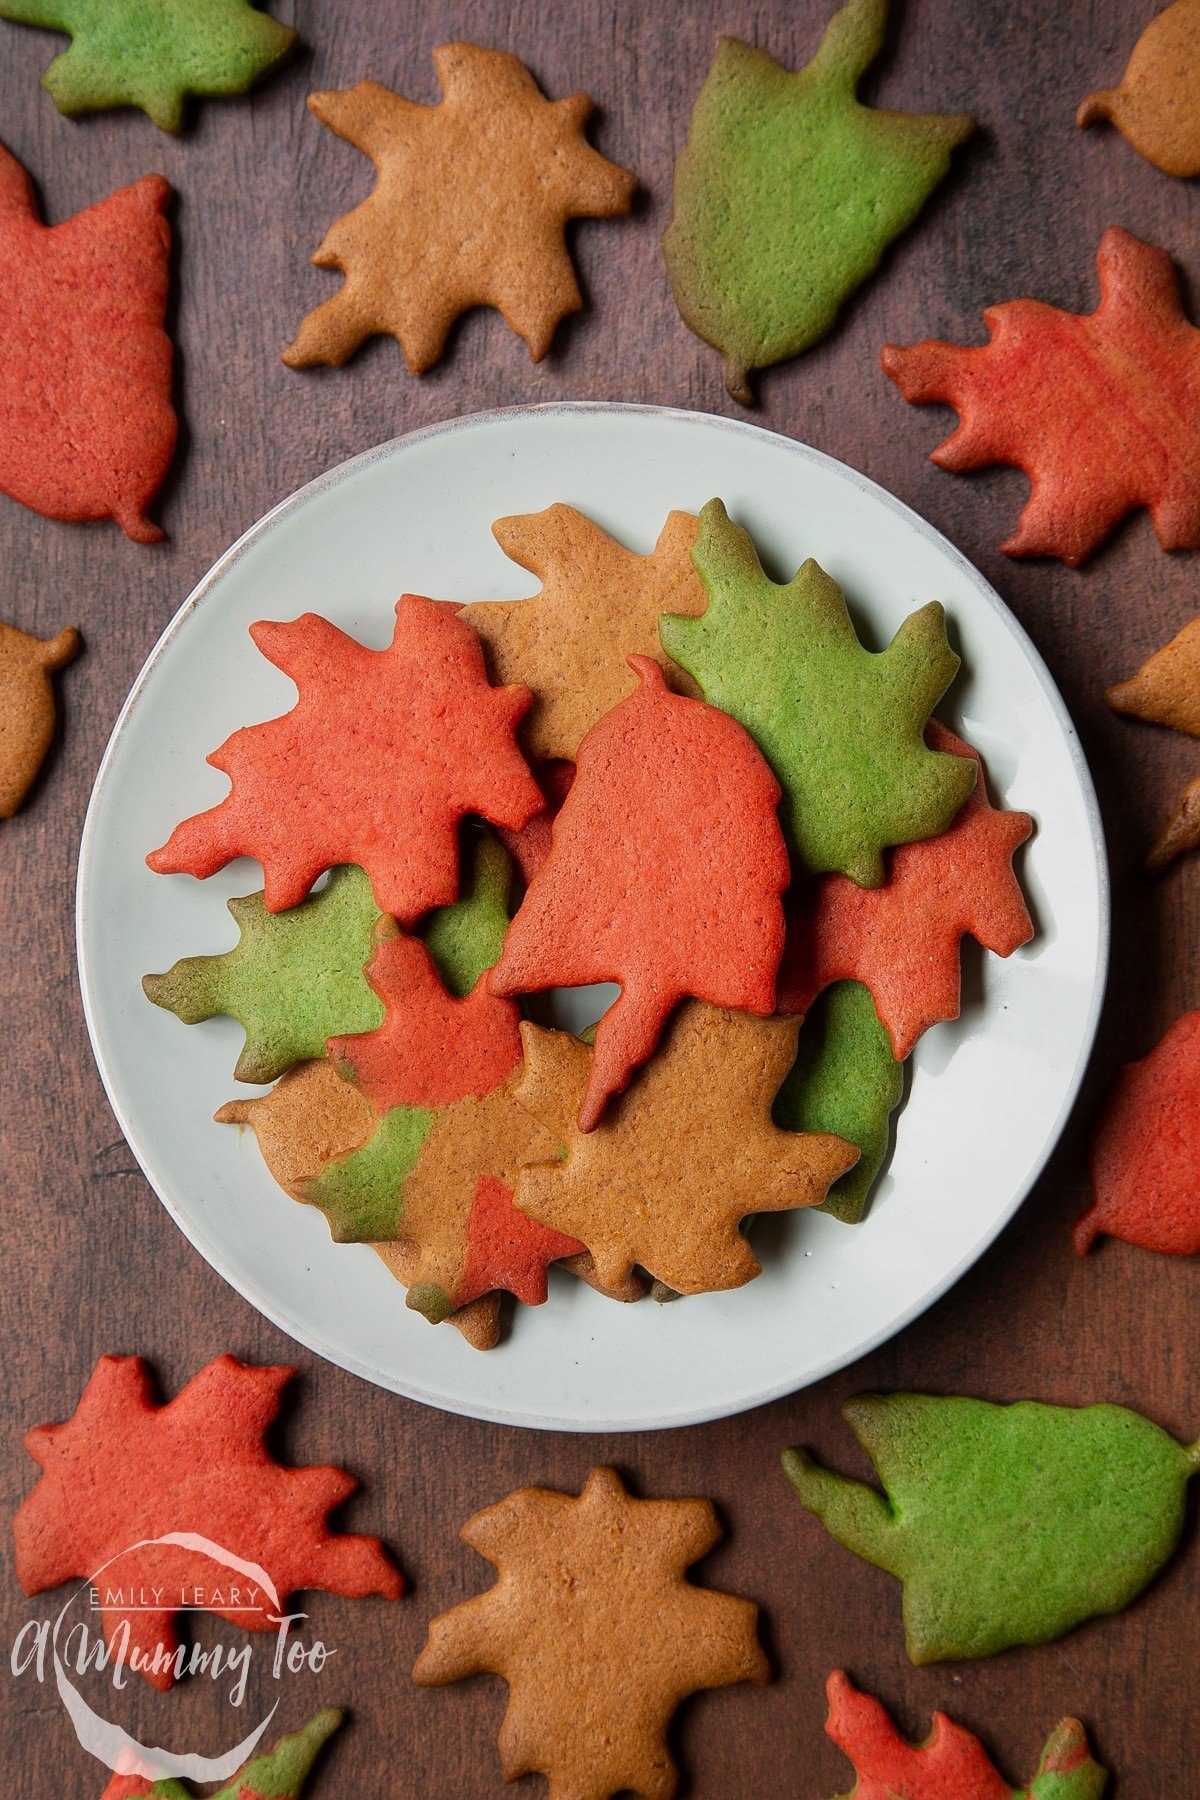 A plate of colourful red, green and brown autumn cookies cut into the shapes of autumn leaves. A red leaf biscuit sits in the centre.